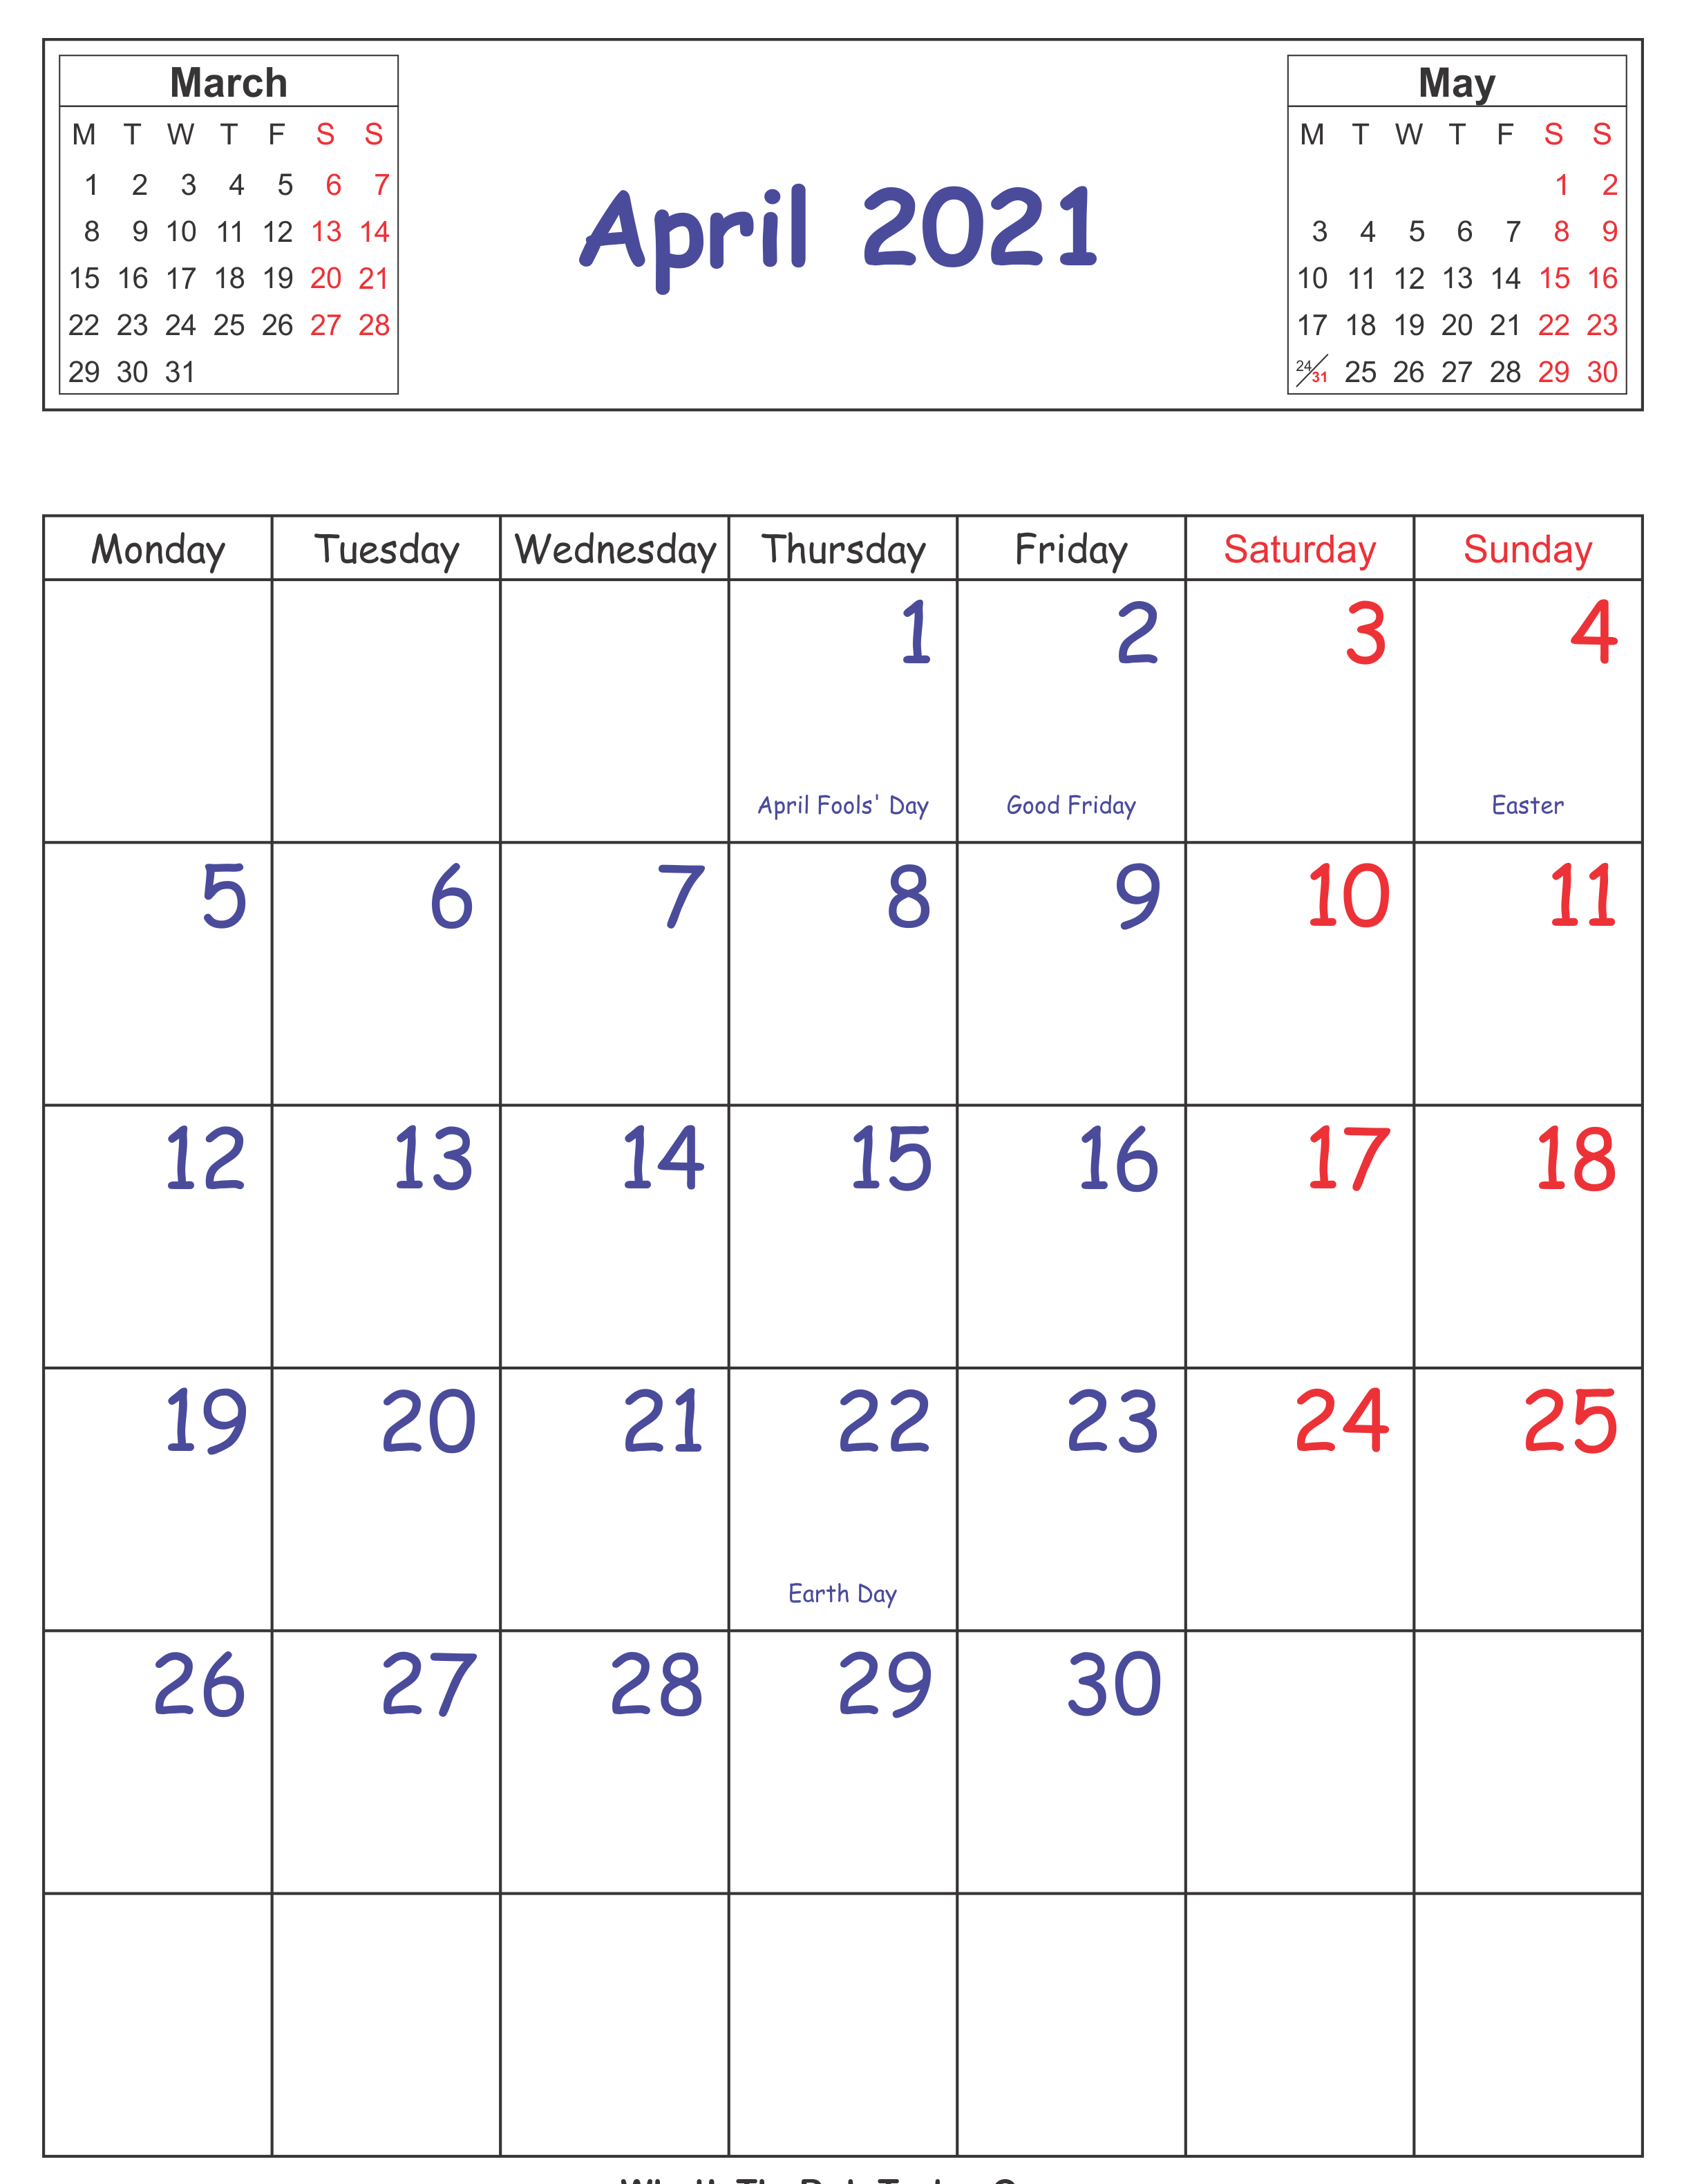 April 2021 Holidays Calendar Template